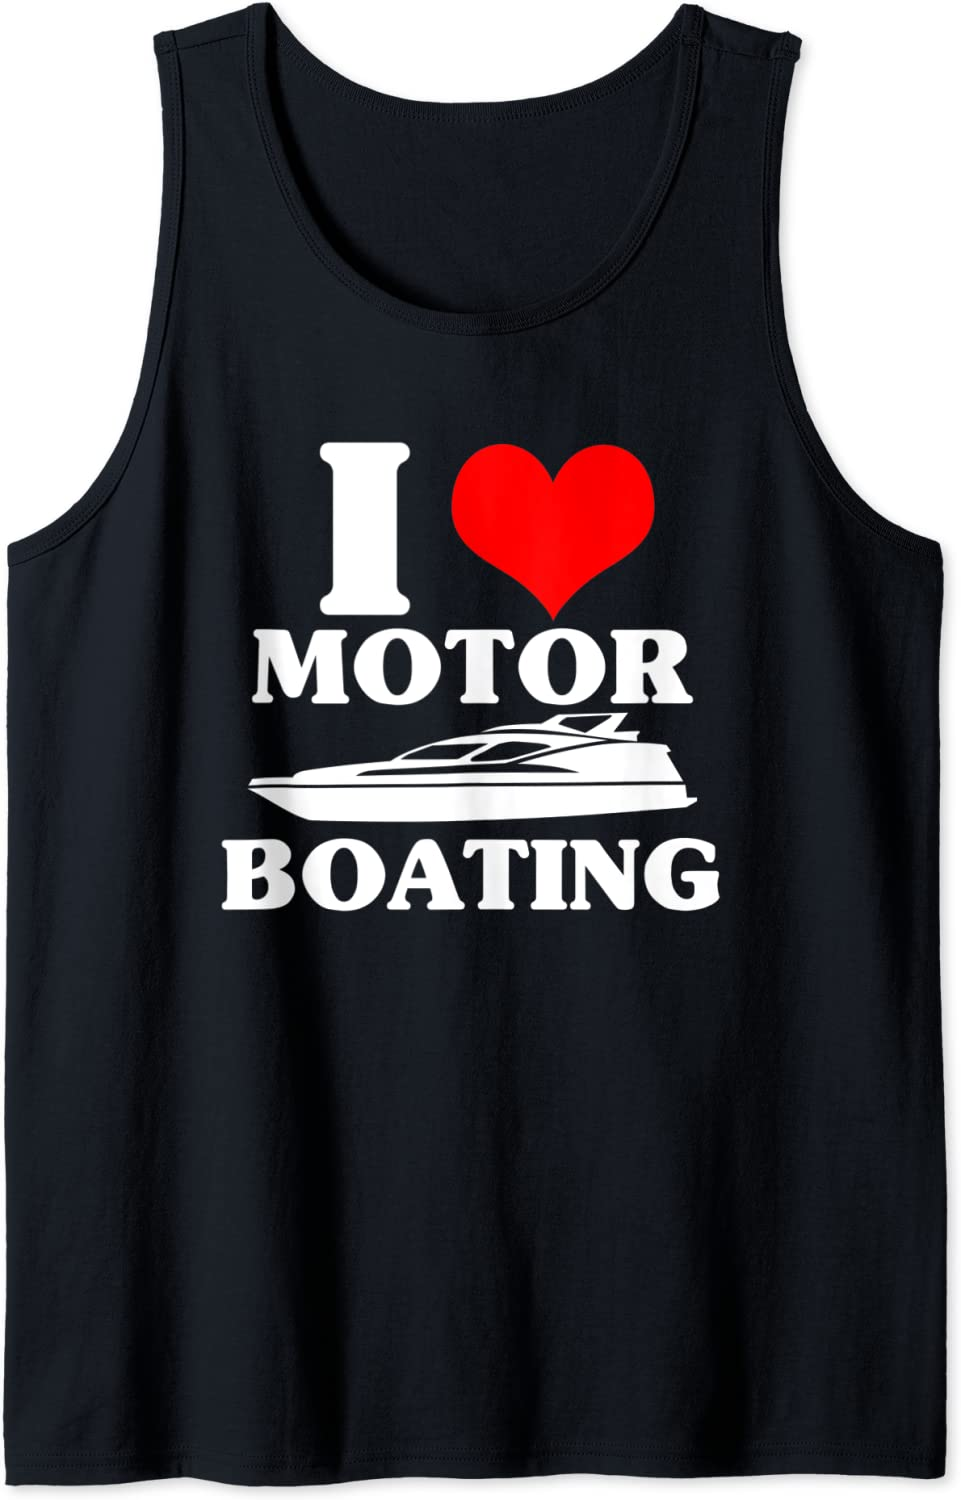 Boater I Love Motor Funny Top Tank Over item Mail order cheap handling Boating